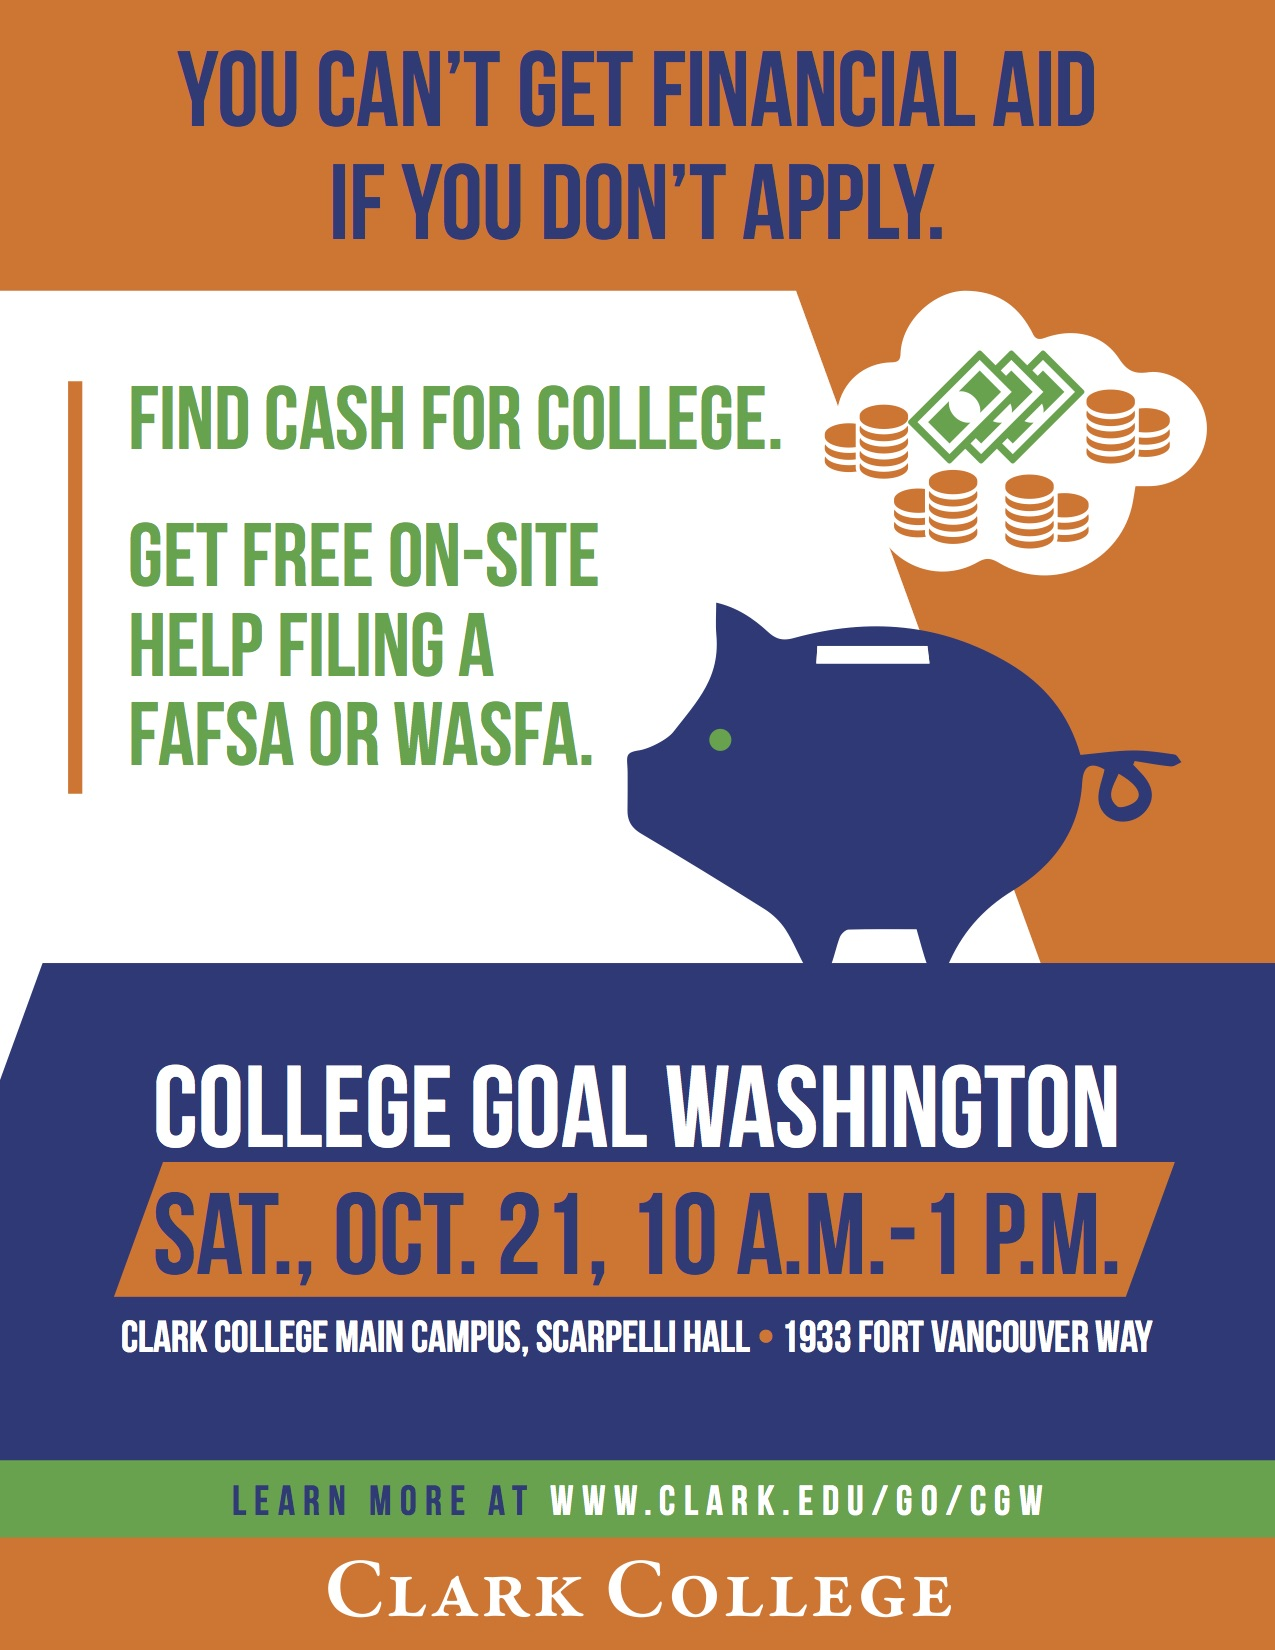 College Goal Washington poster with event information